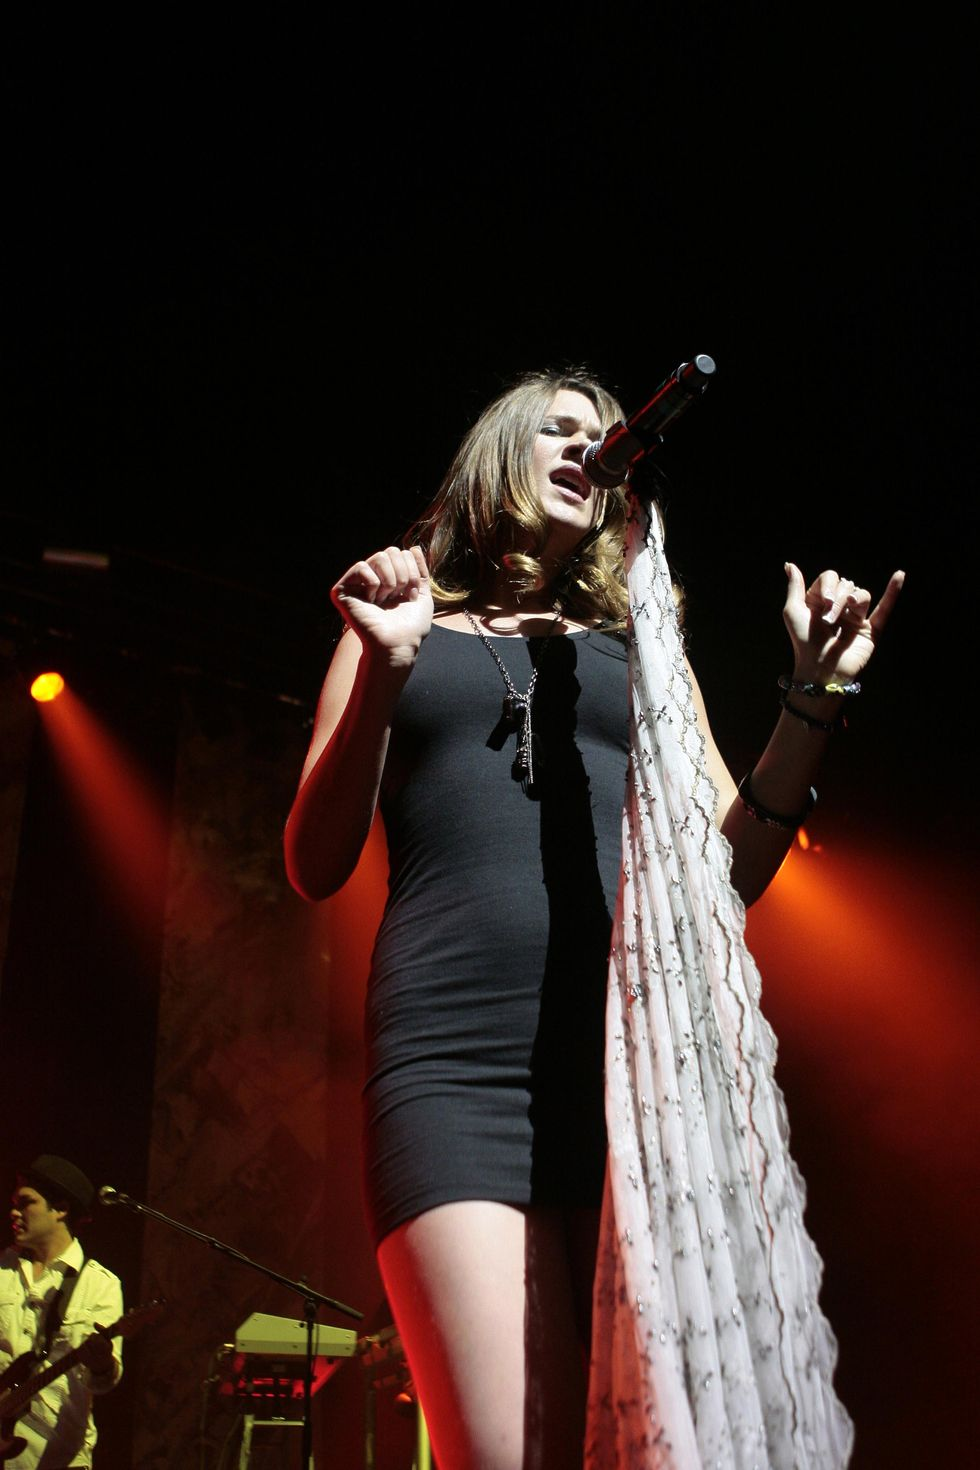 joss-stone-performing-live-at-the-olympia-in-paris-01